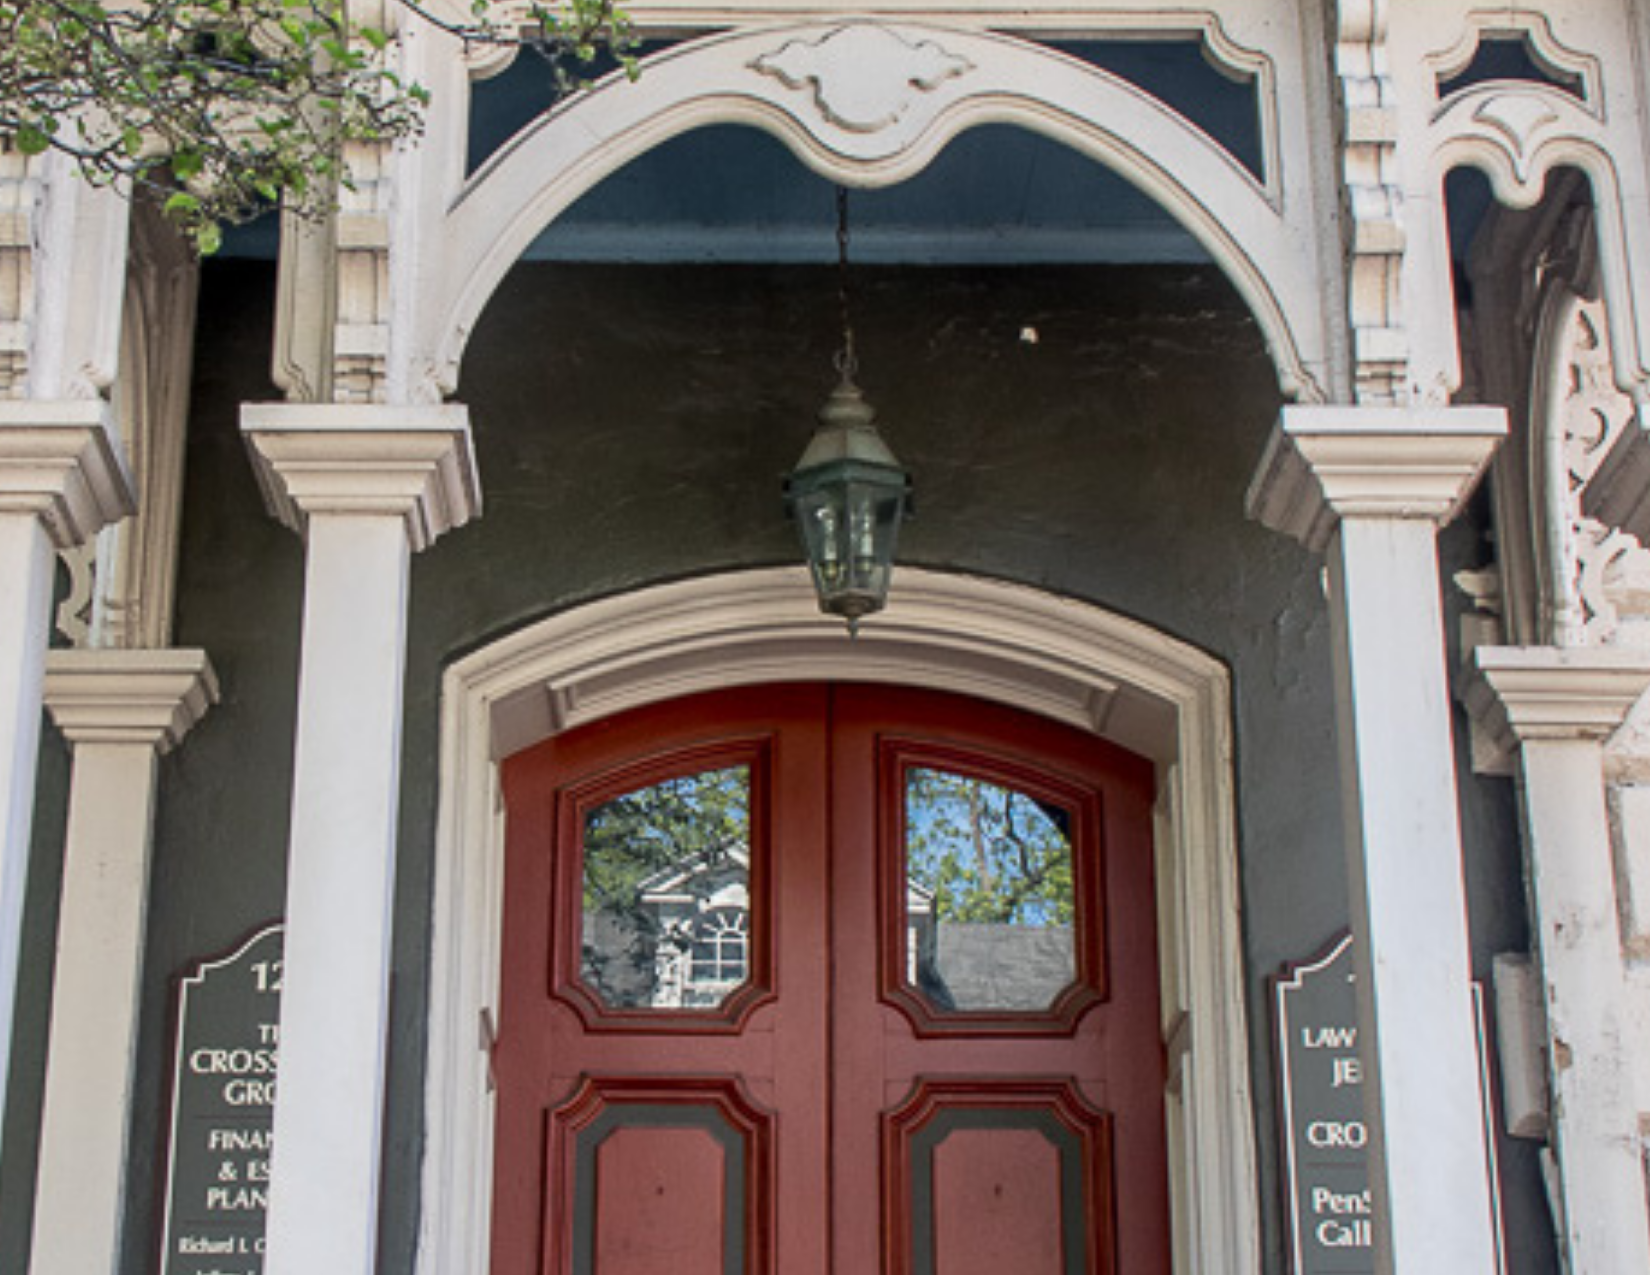 decorative arched entryway with red door